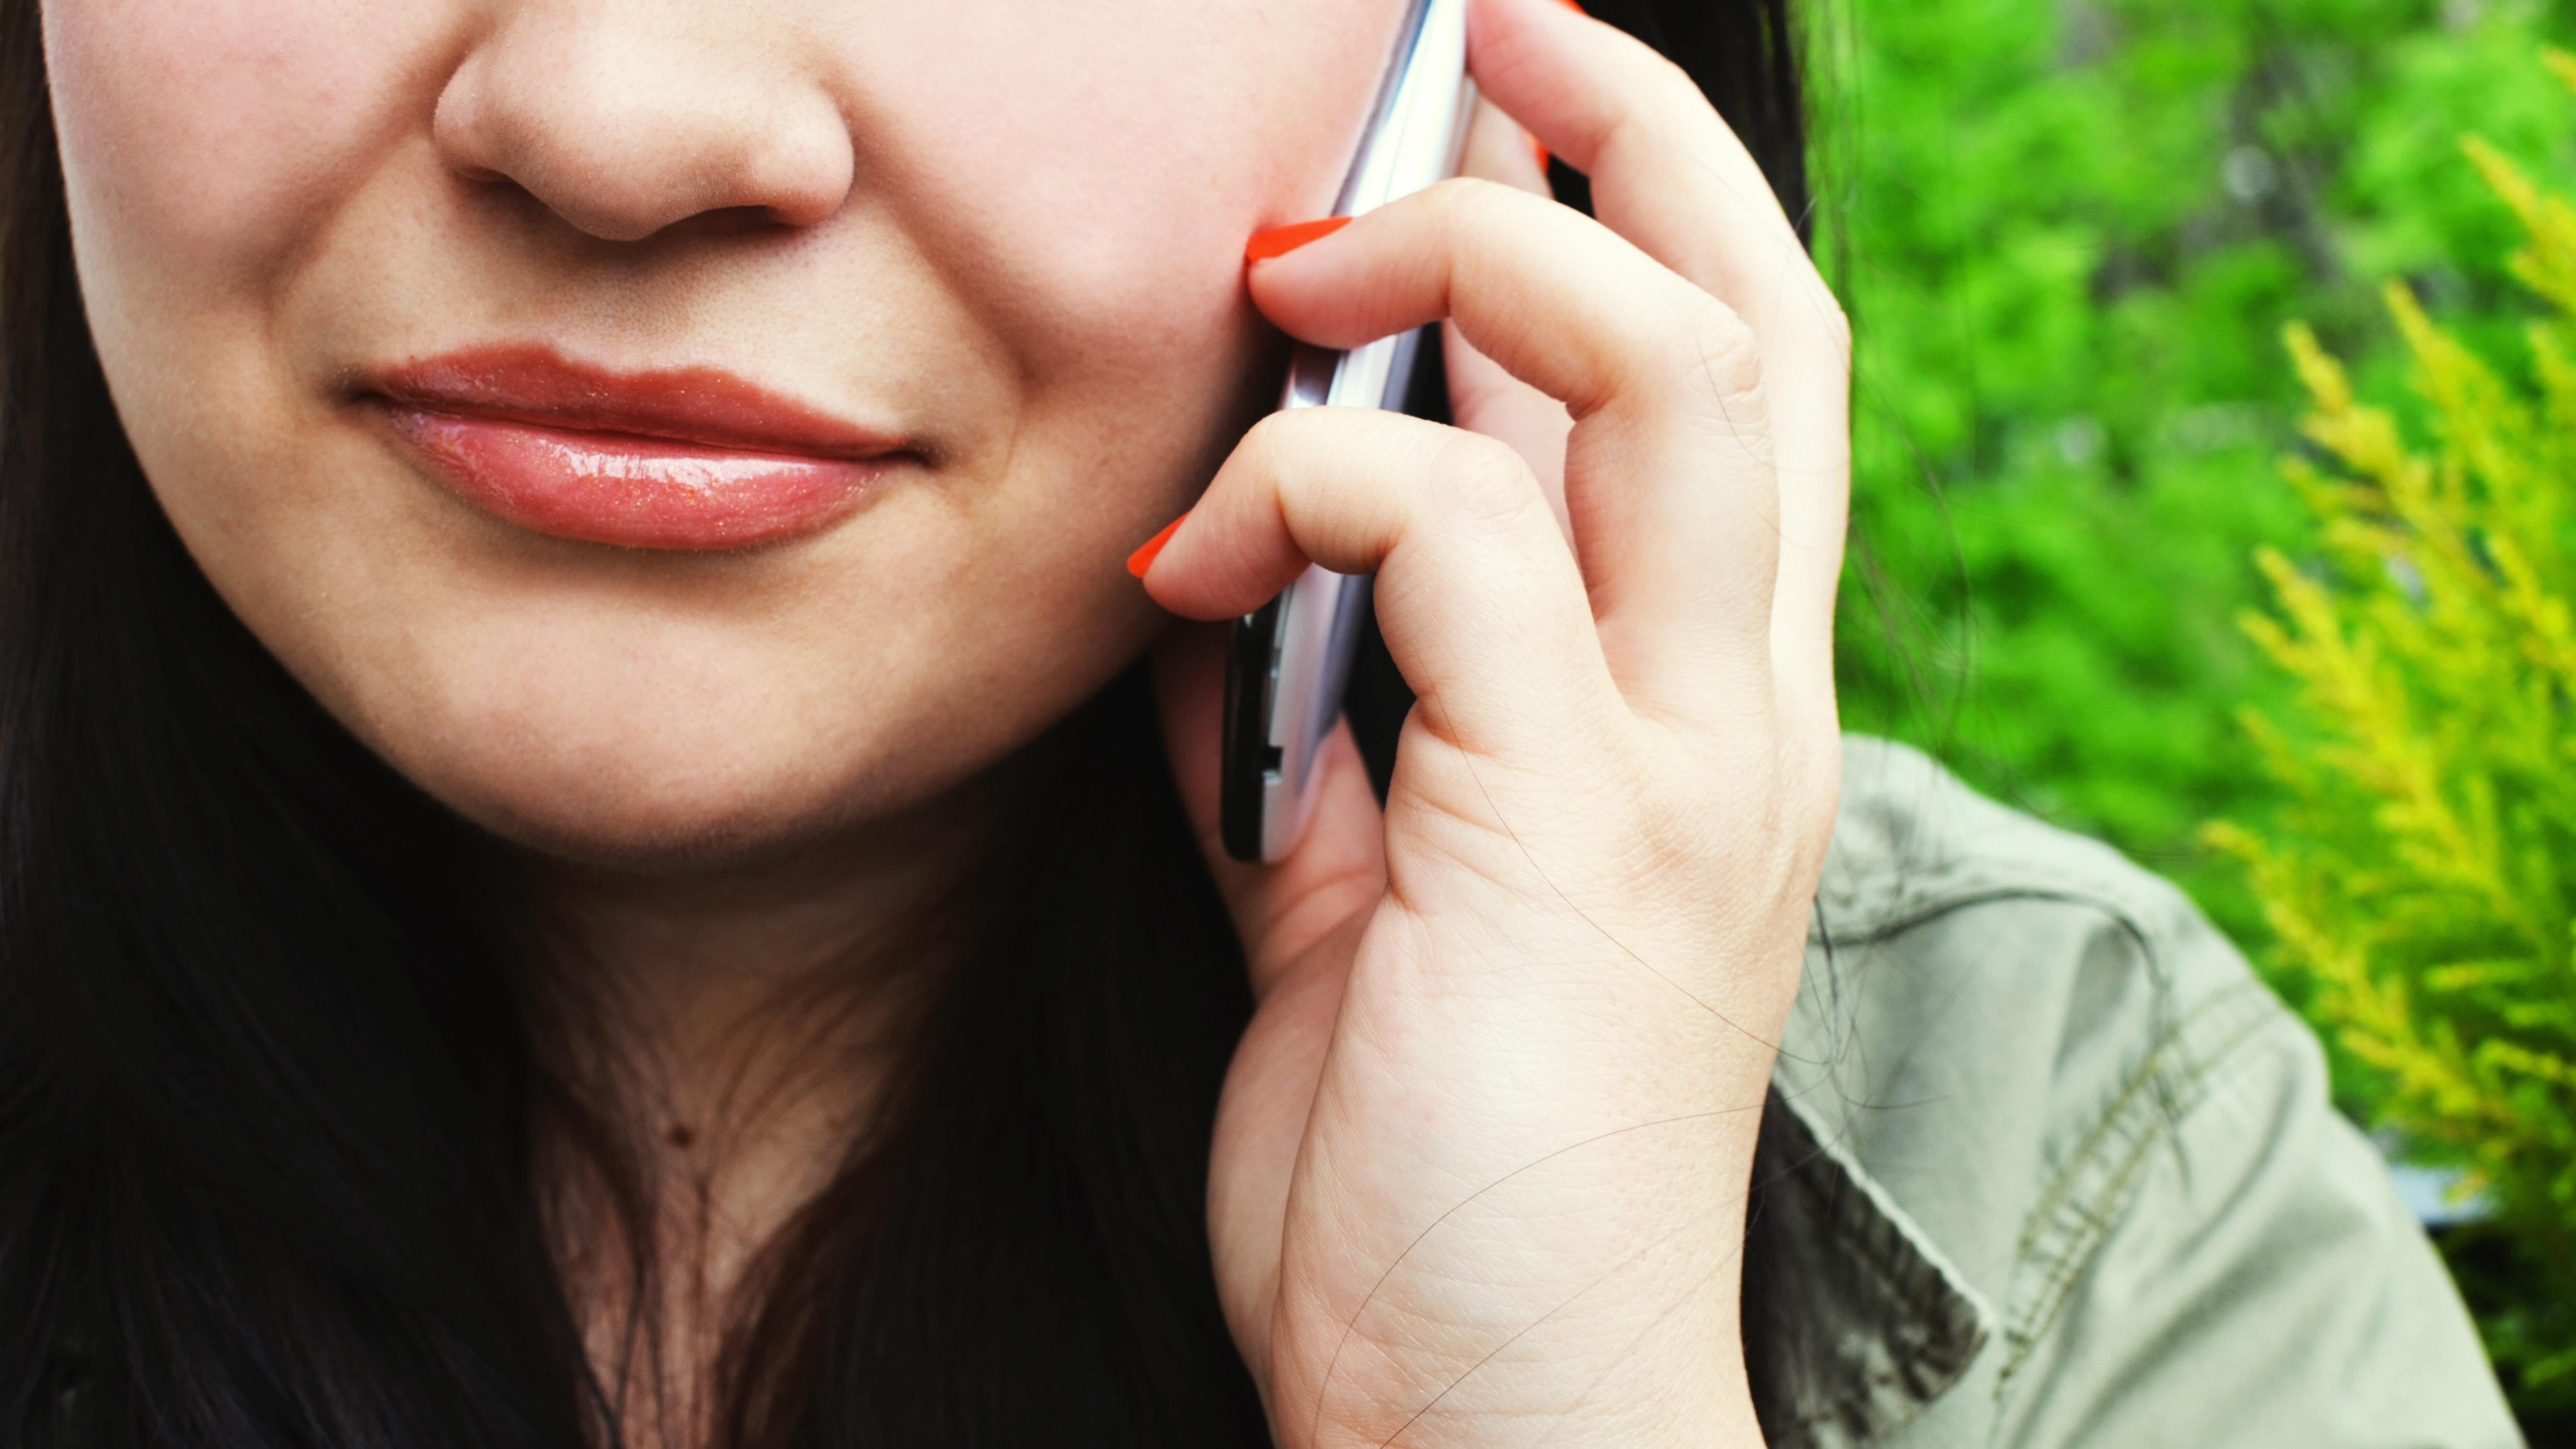 How To Make Phone Calls Over Wi-Fi With Google Voice